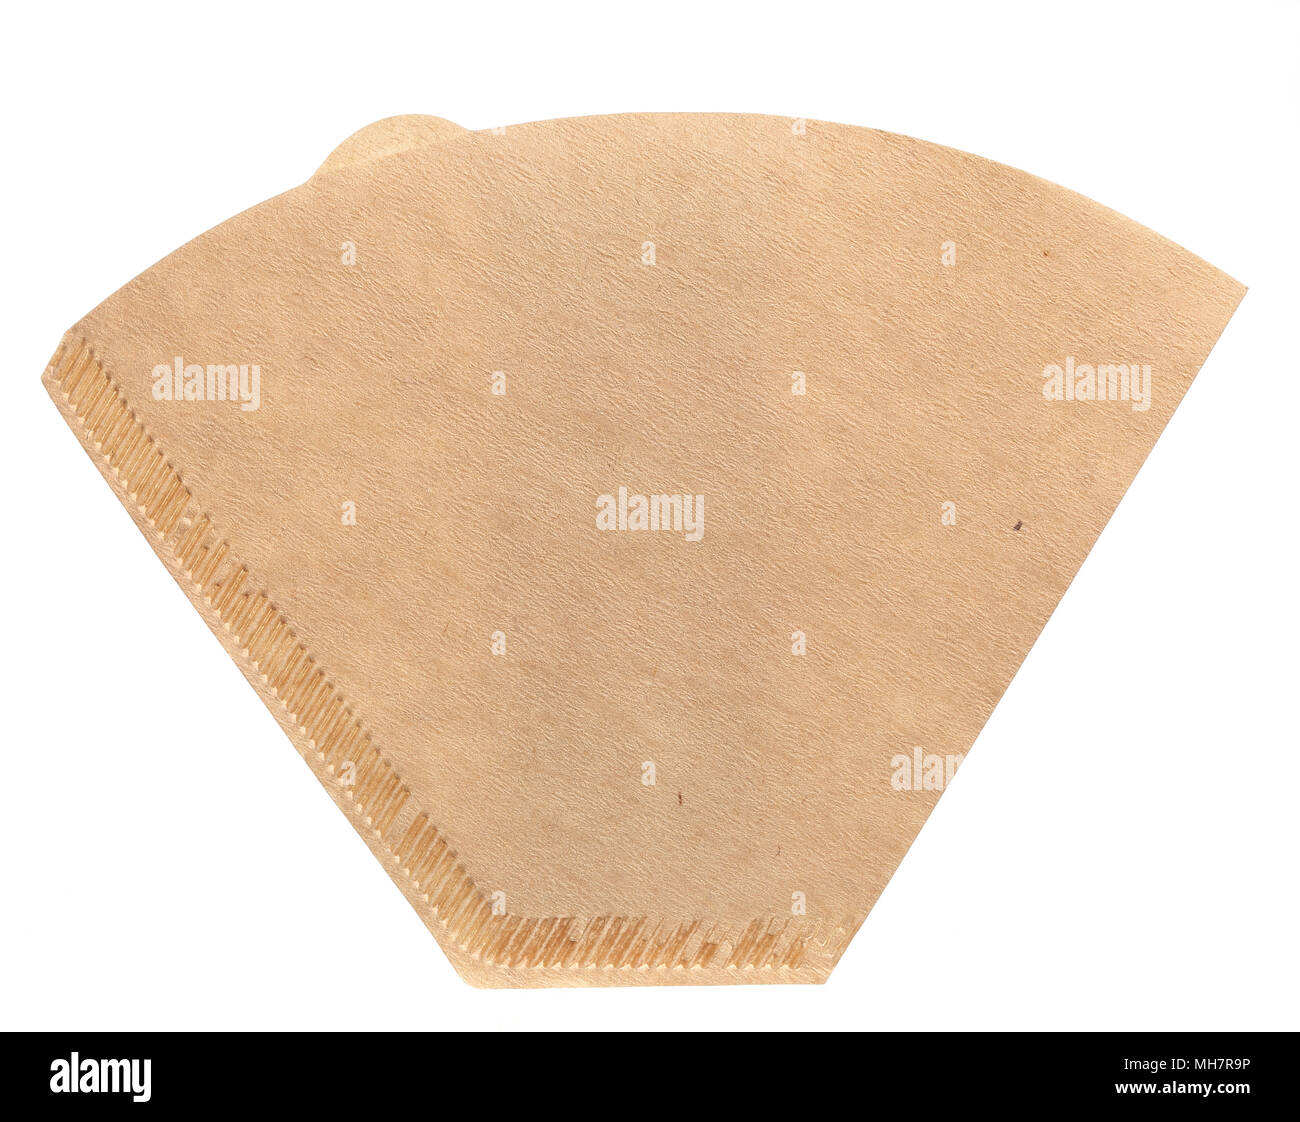 One New Unused Coffee Filter Flat Isolated On White Background